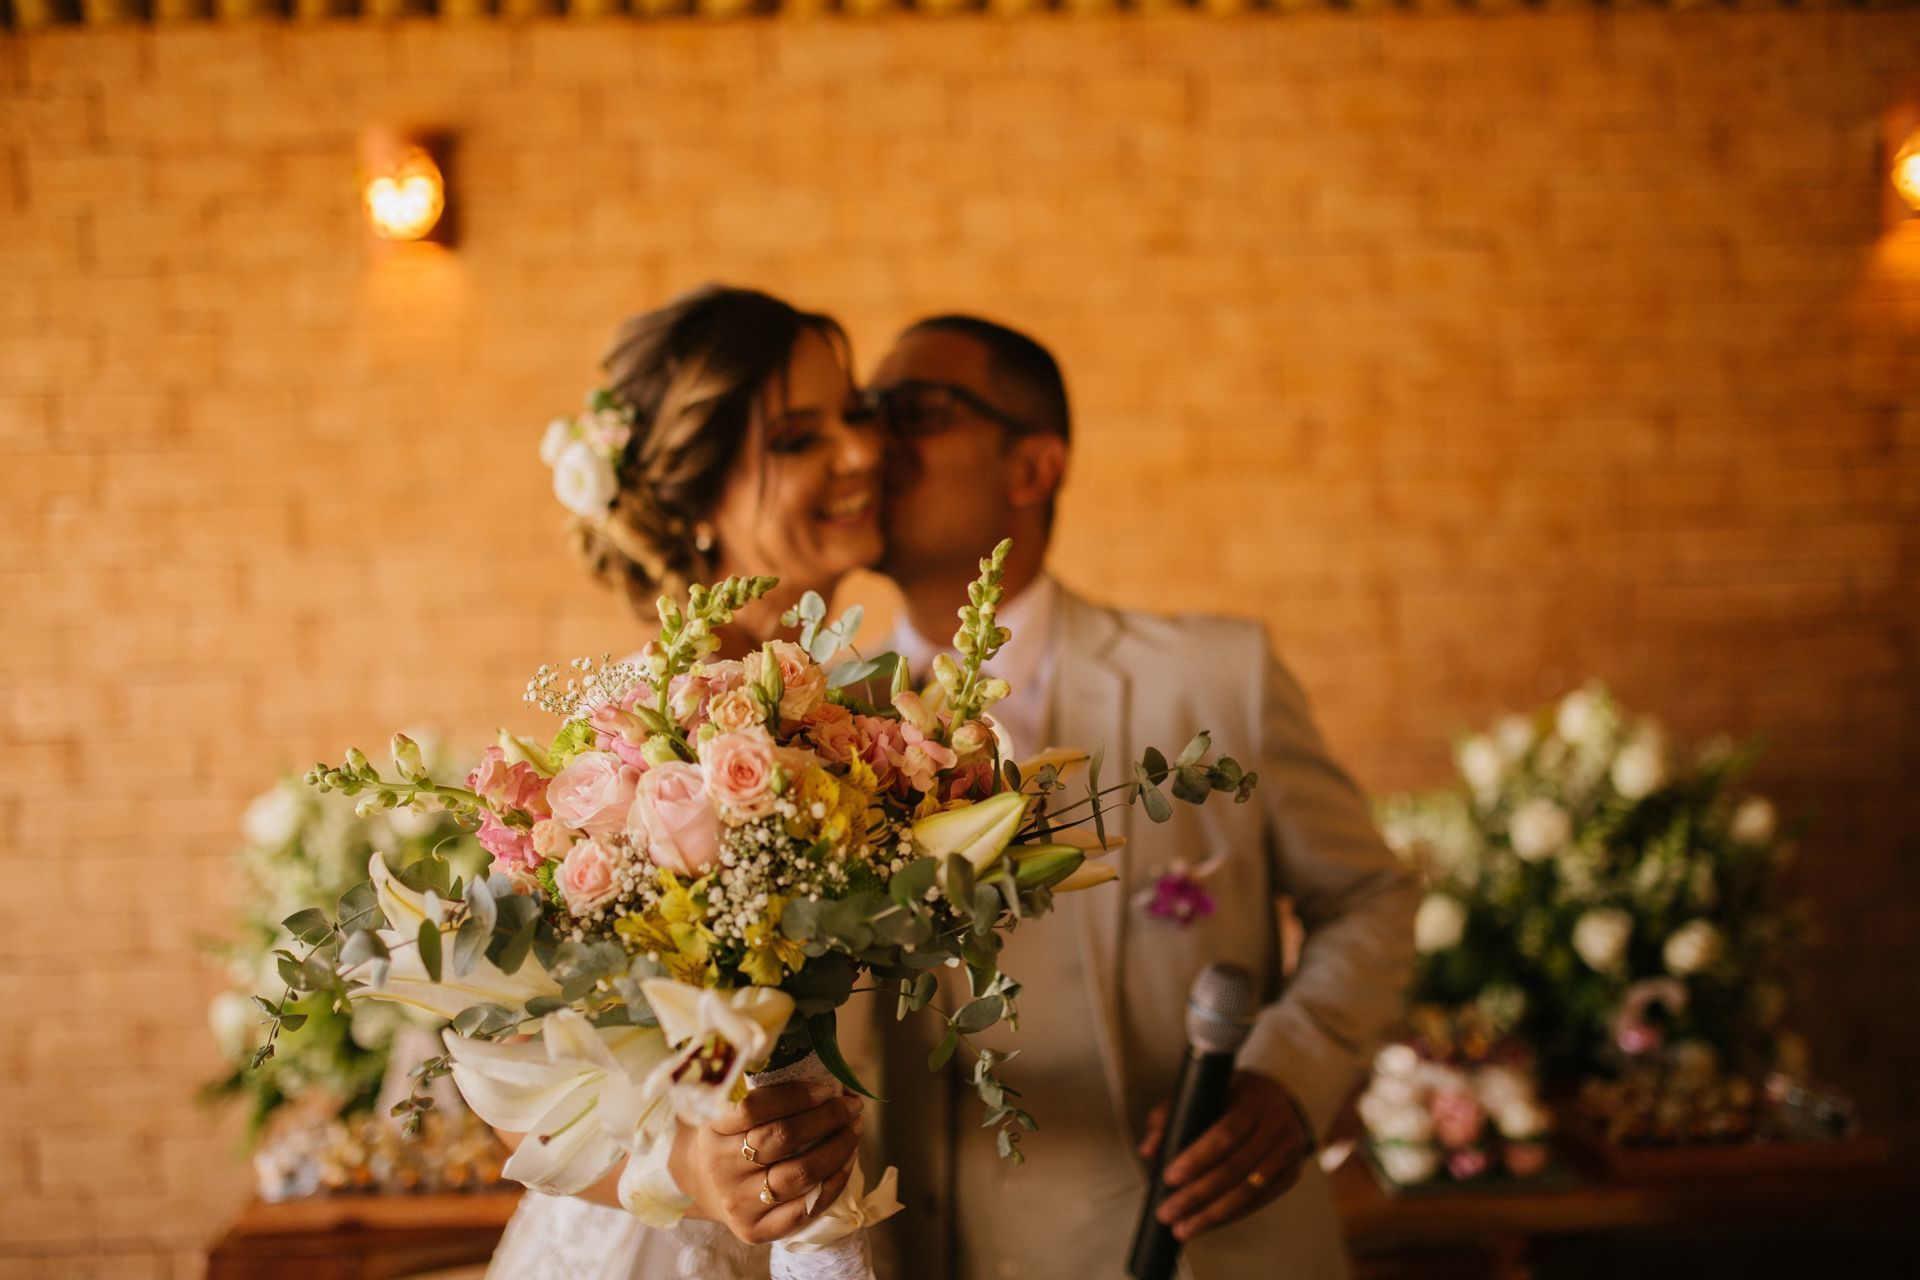 Mini Wedding- Camila e Alex -  Uberlândia Minas Gerais